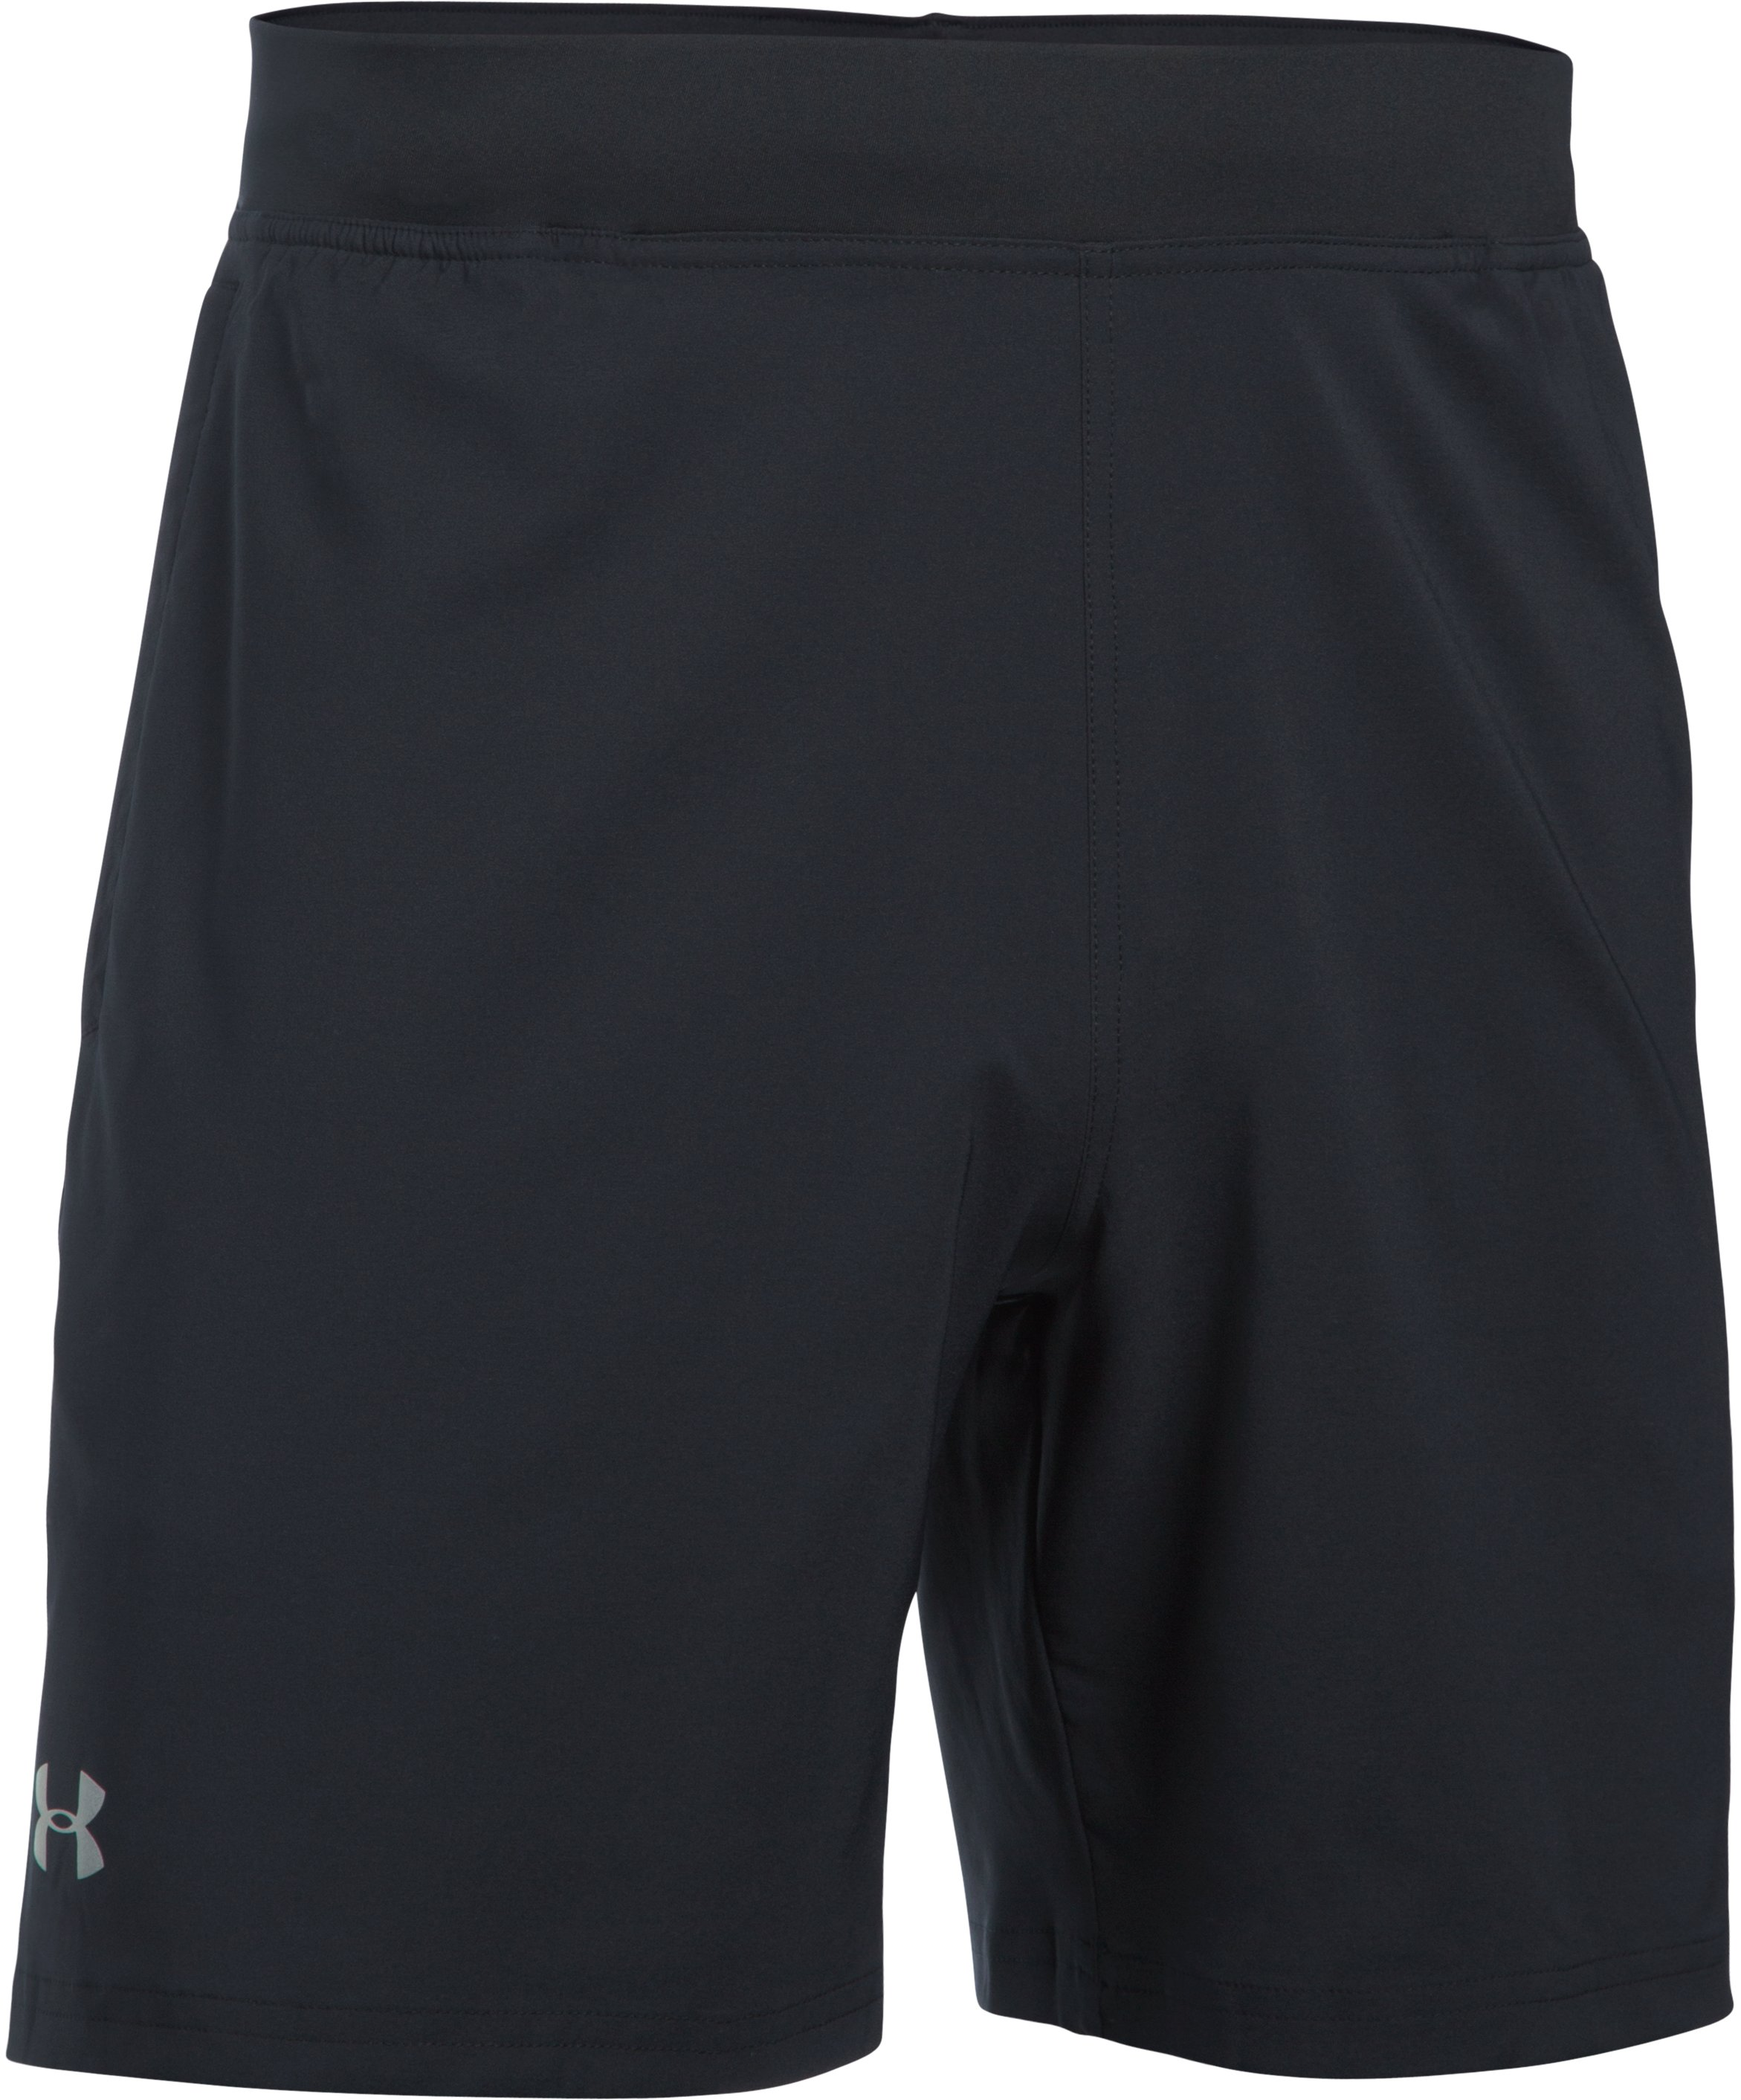 "Men's UA Speedpocket 7"" Shorts, Black ,"